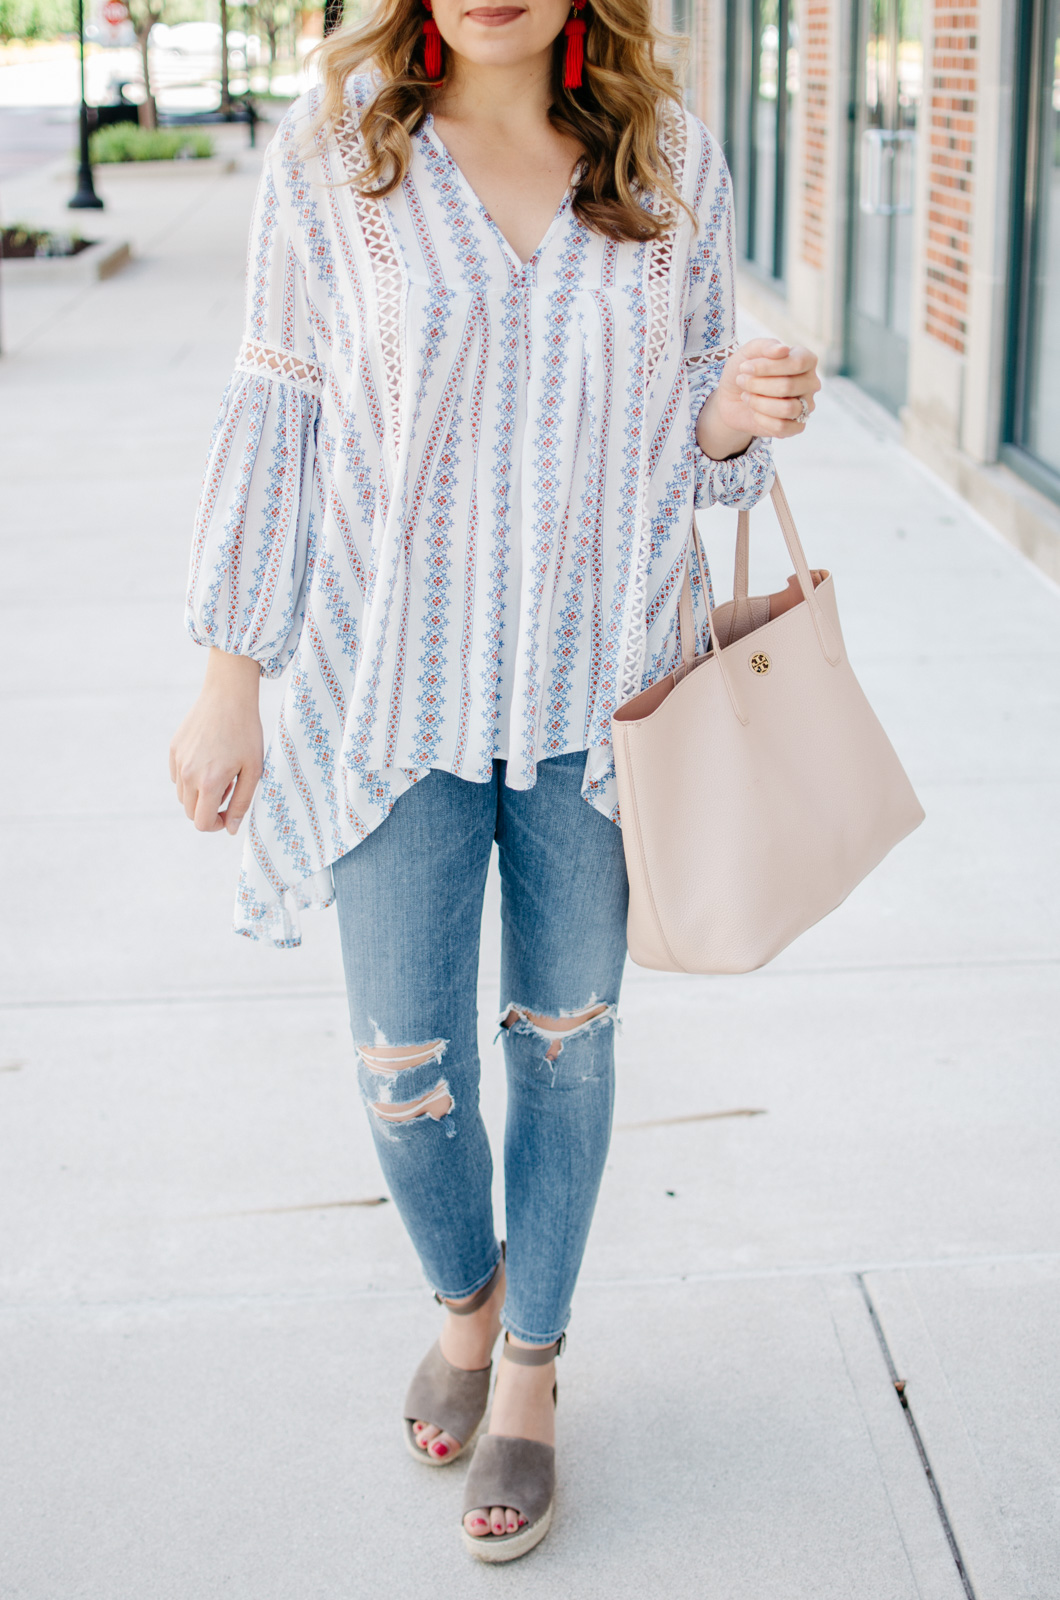 spring boho outfit idea - boho top outfit | For more weekend outfit ideas, head to bylaurenm.com